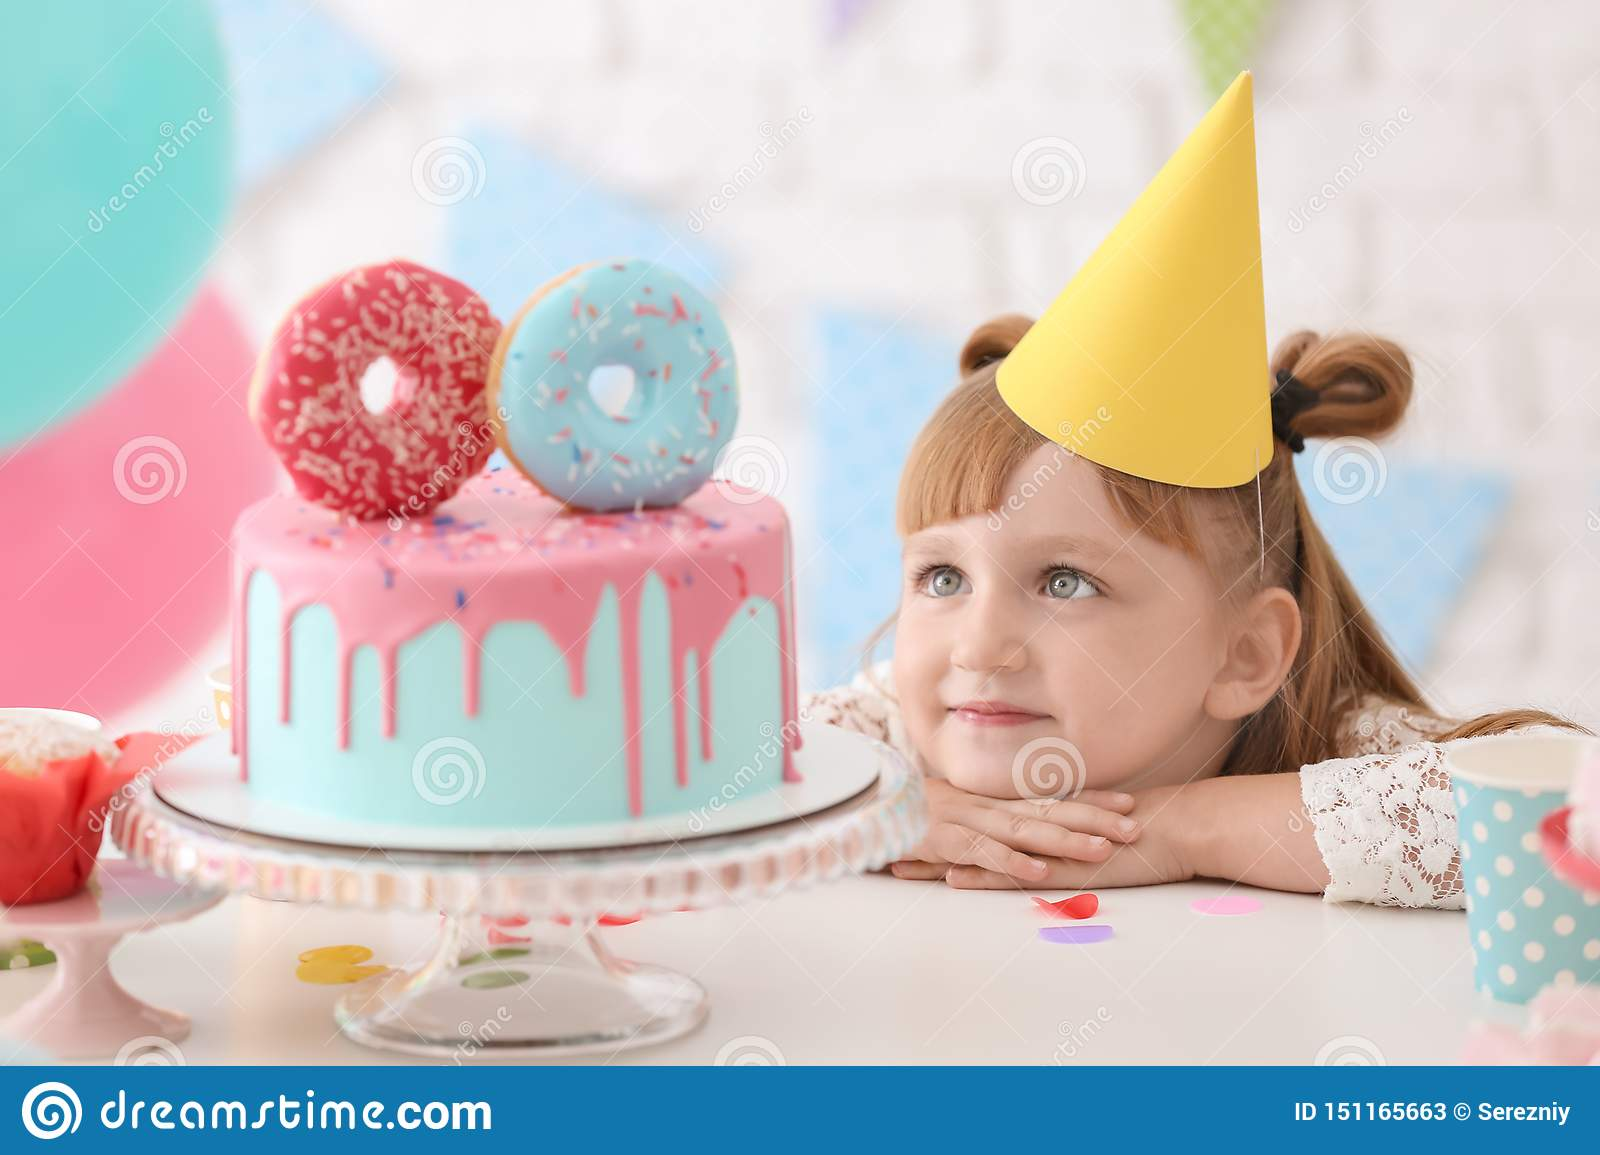 Superb Cute Little Girl With Tasty Birthday Cake At Party Stock Image Funny Birthday Cards Online Elaedamsfinfo